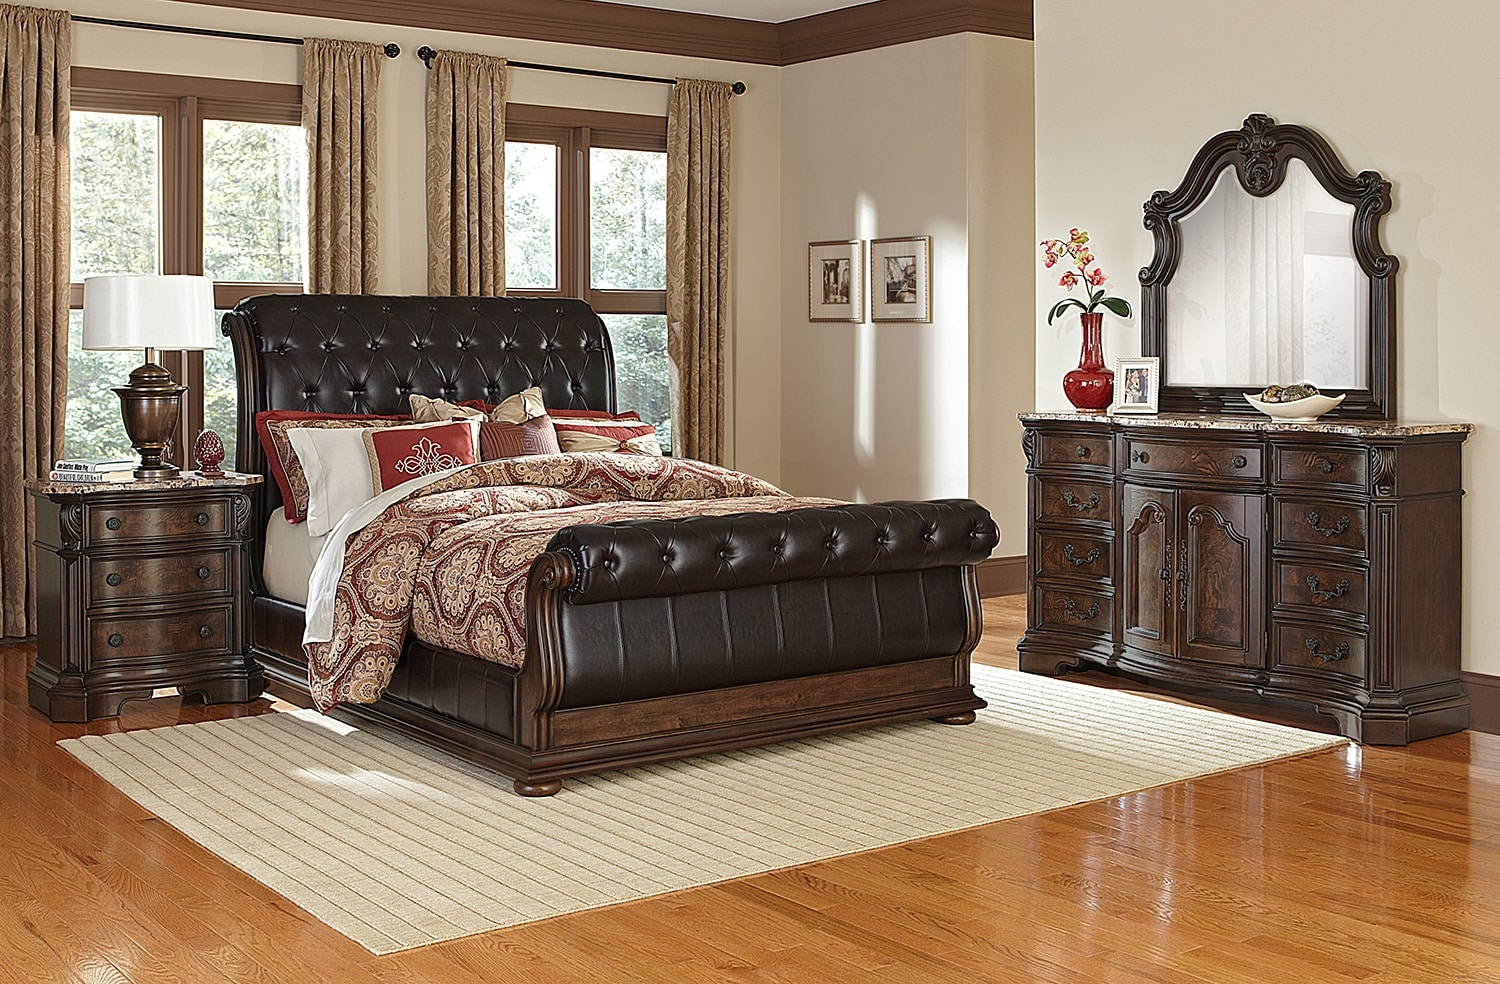 Bedroom Furniture - Monticello 6-Piece Queen Sleigh Bedroom Set - Pecan